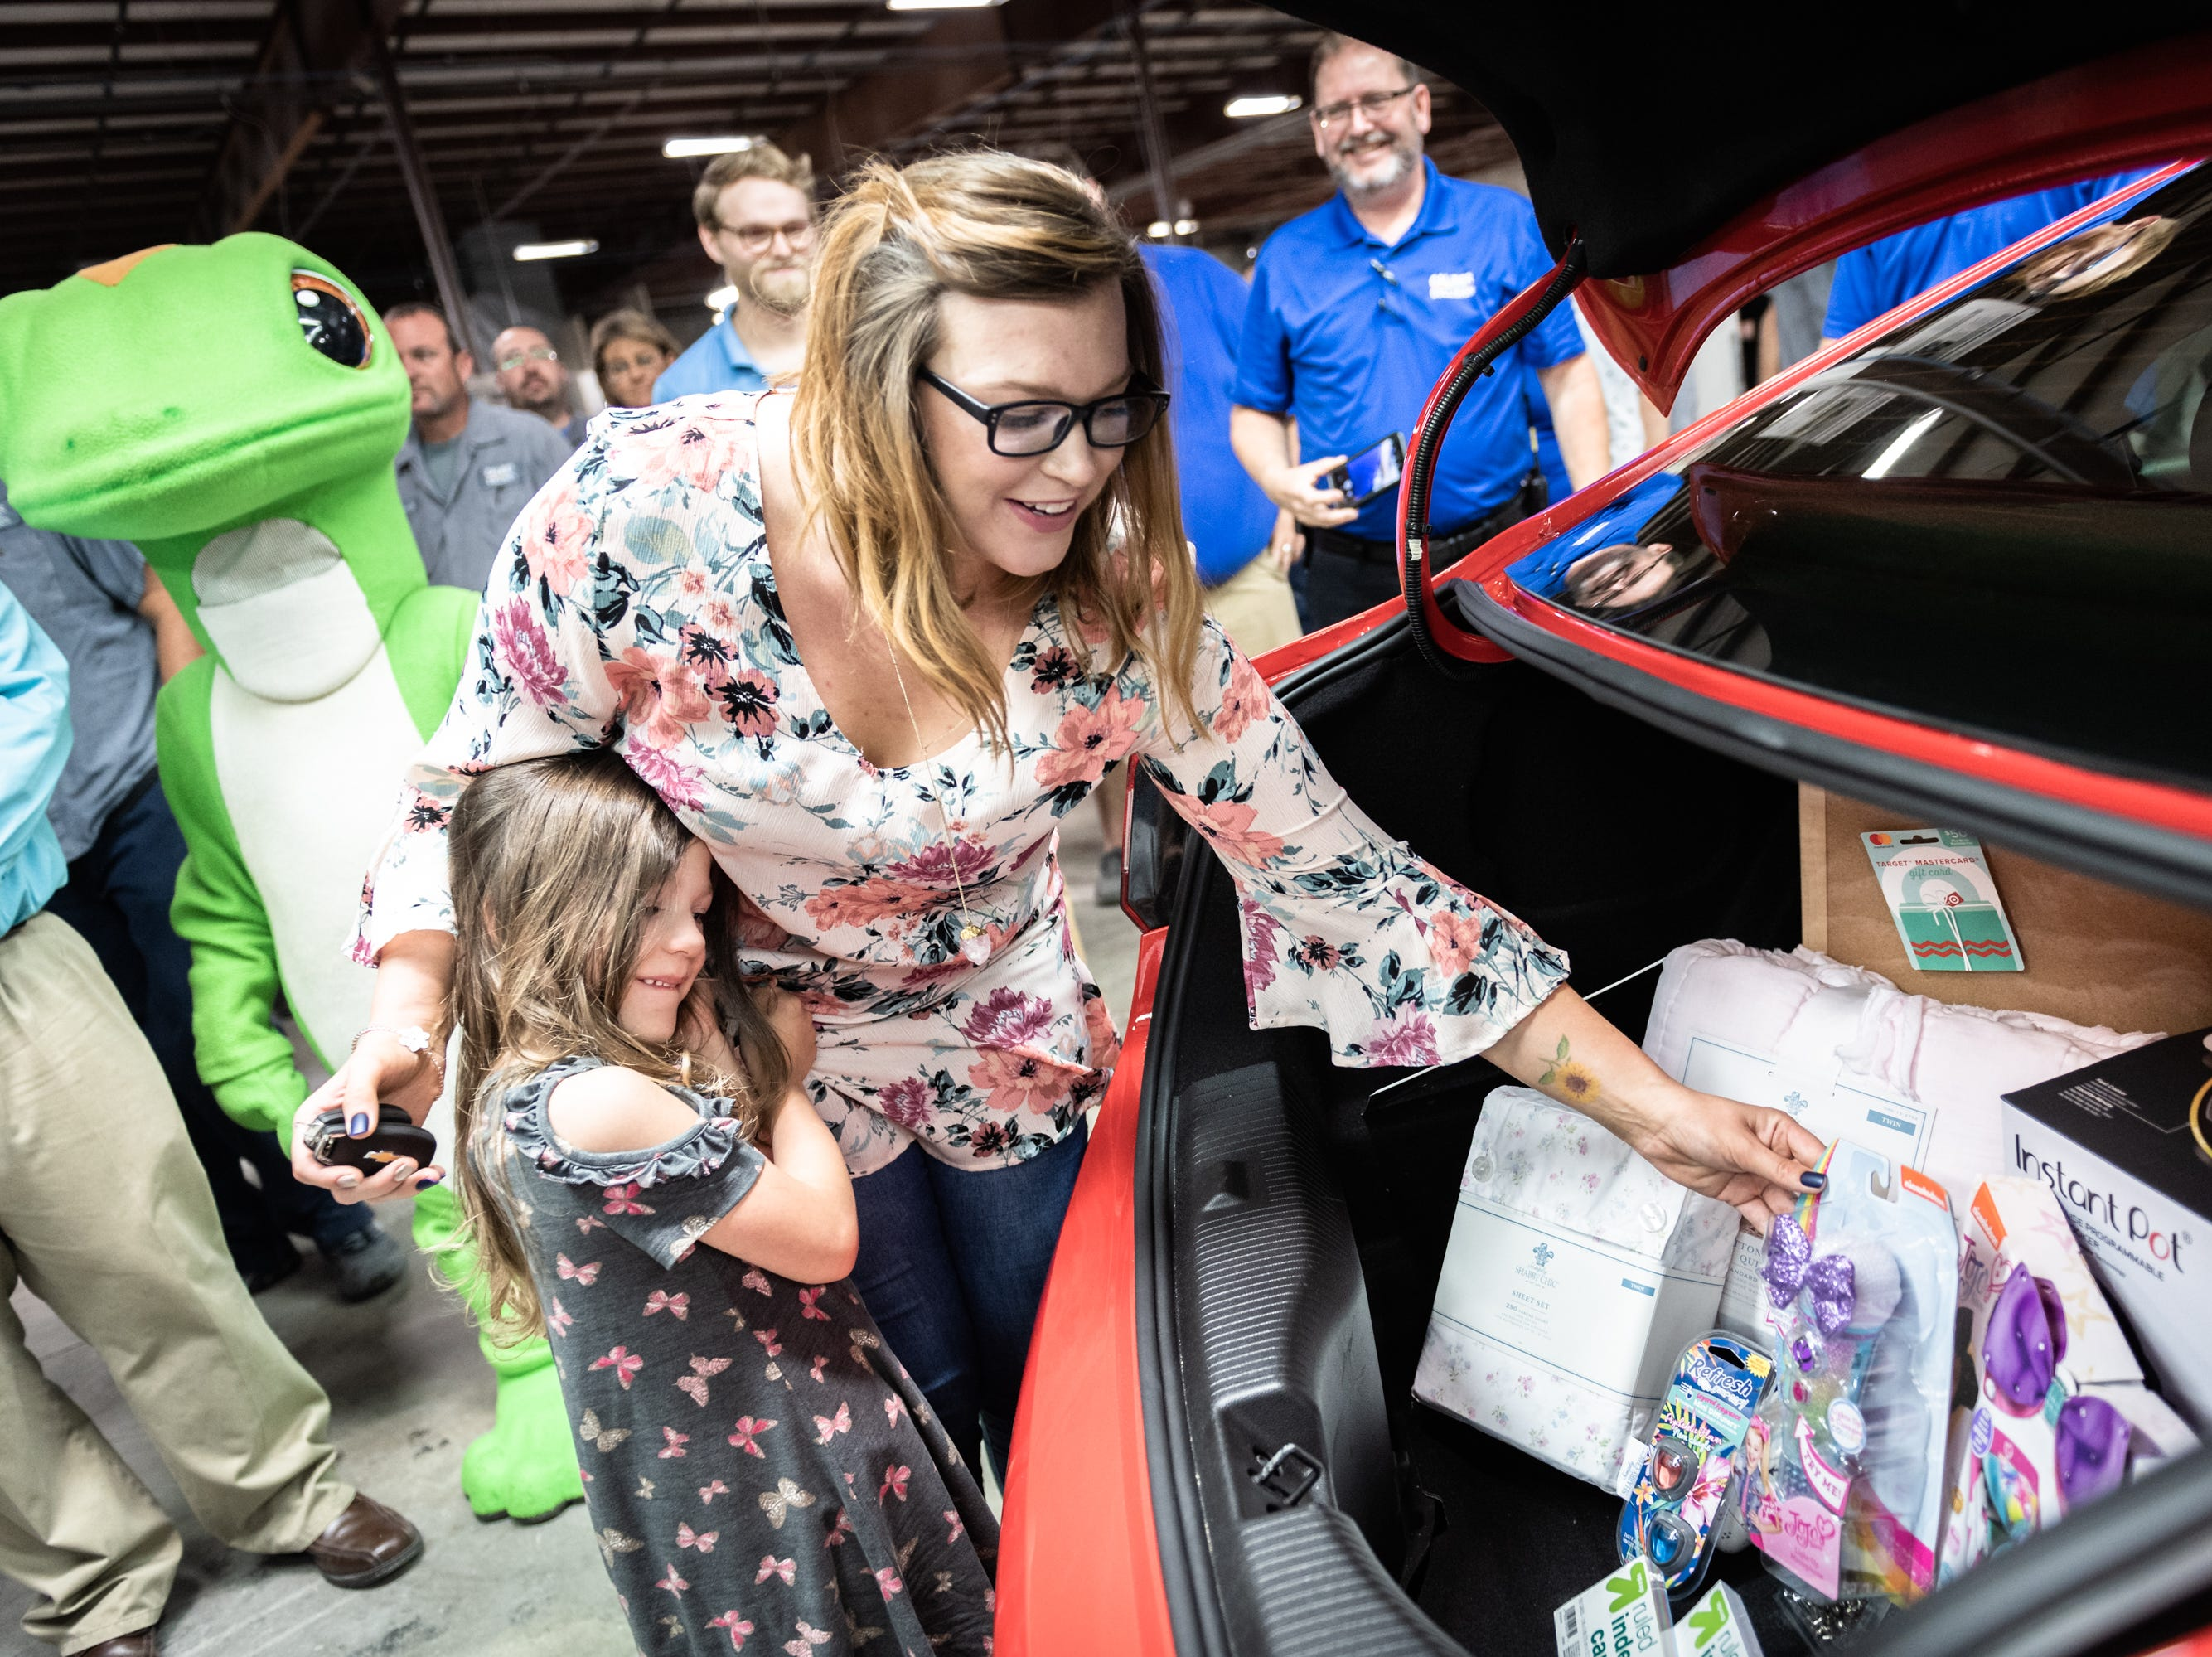 Leah Floyd, 23, and her daughter, Avah Floyd, 5, of Anderson, look at gifts in the trunk of their new 2018 Chevy Cruze she was presented with at Caliber Collision on Ridge Road in Greenville, Wednesday, May 8, 2019, as part of their Recycled Rides program. Caliber Collision partners with Geico for the program and worked with local nonprofit, AIM who nominated Floyd as the recipient.